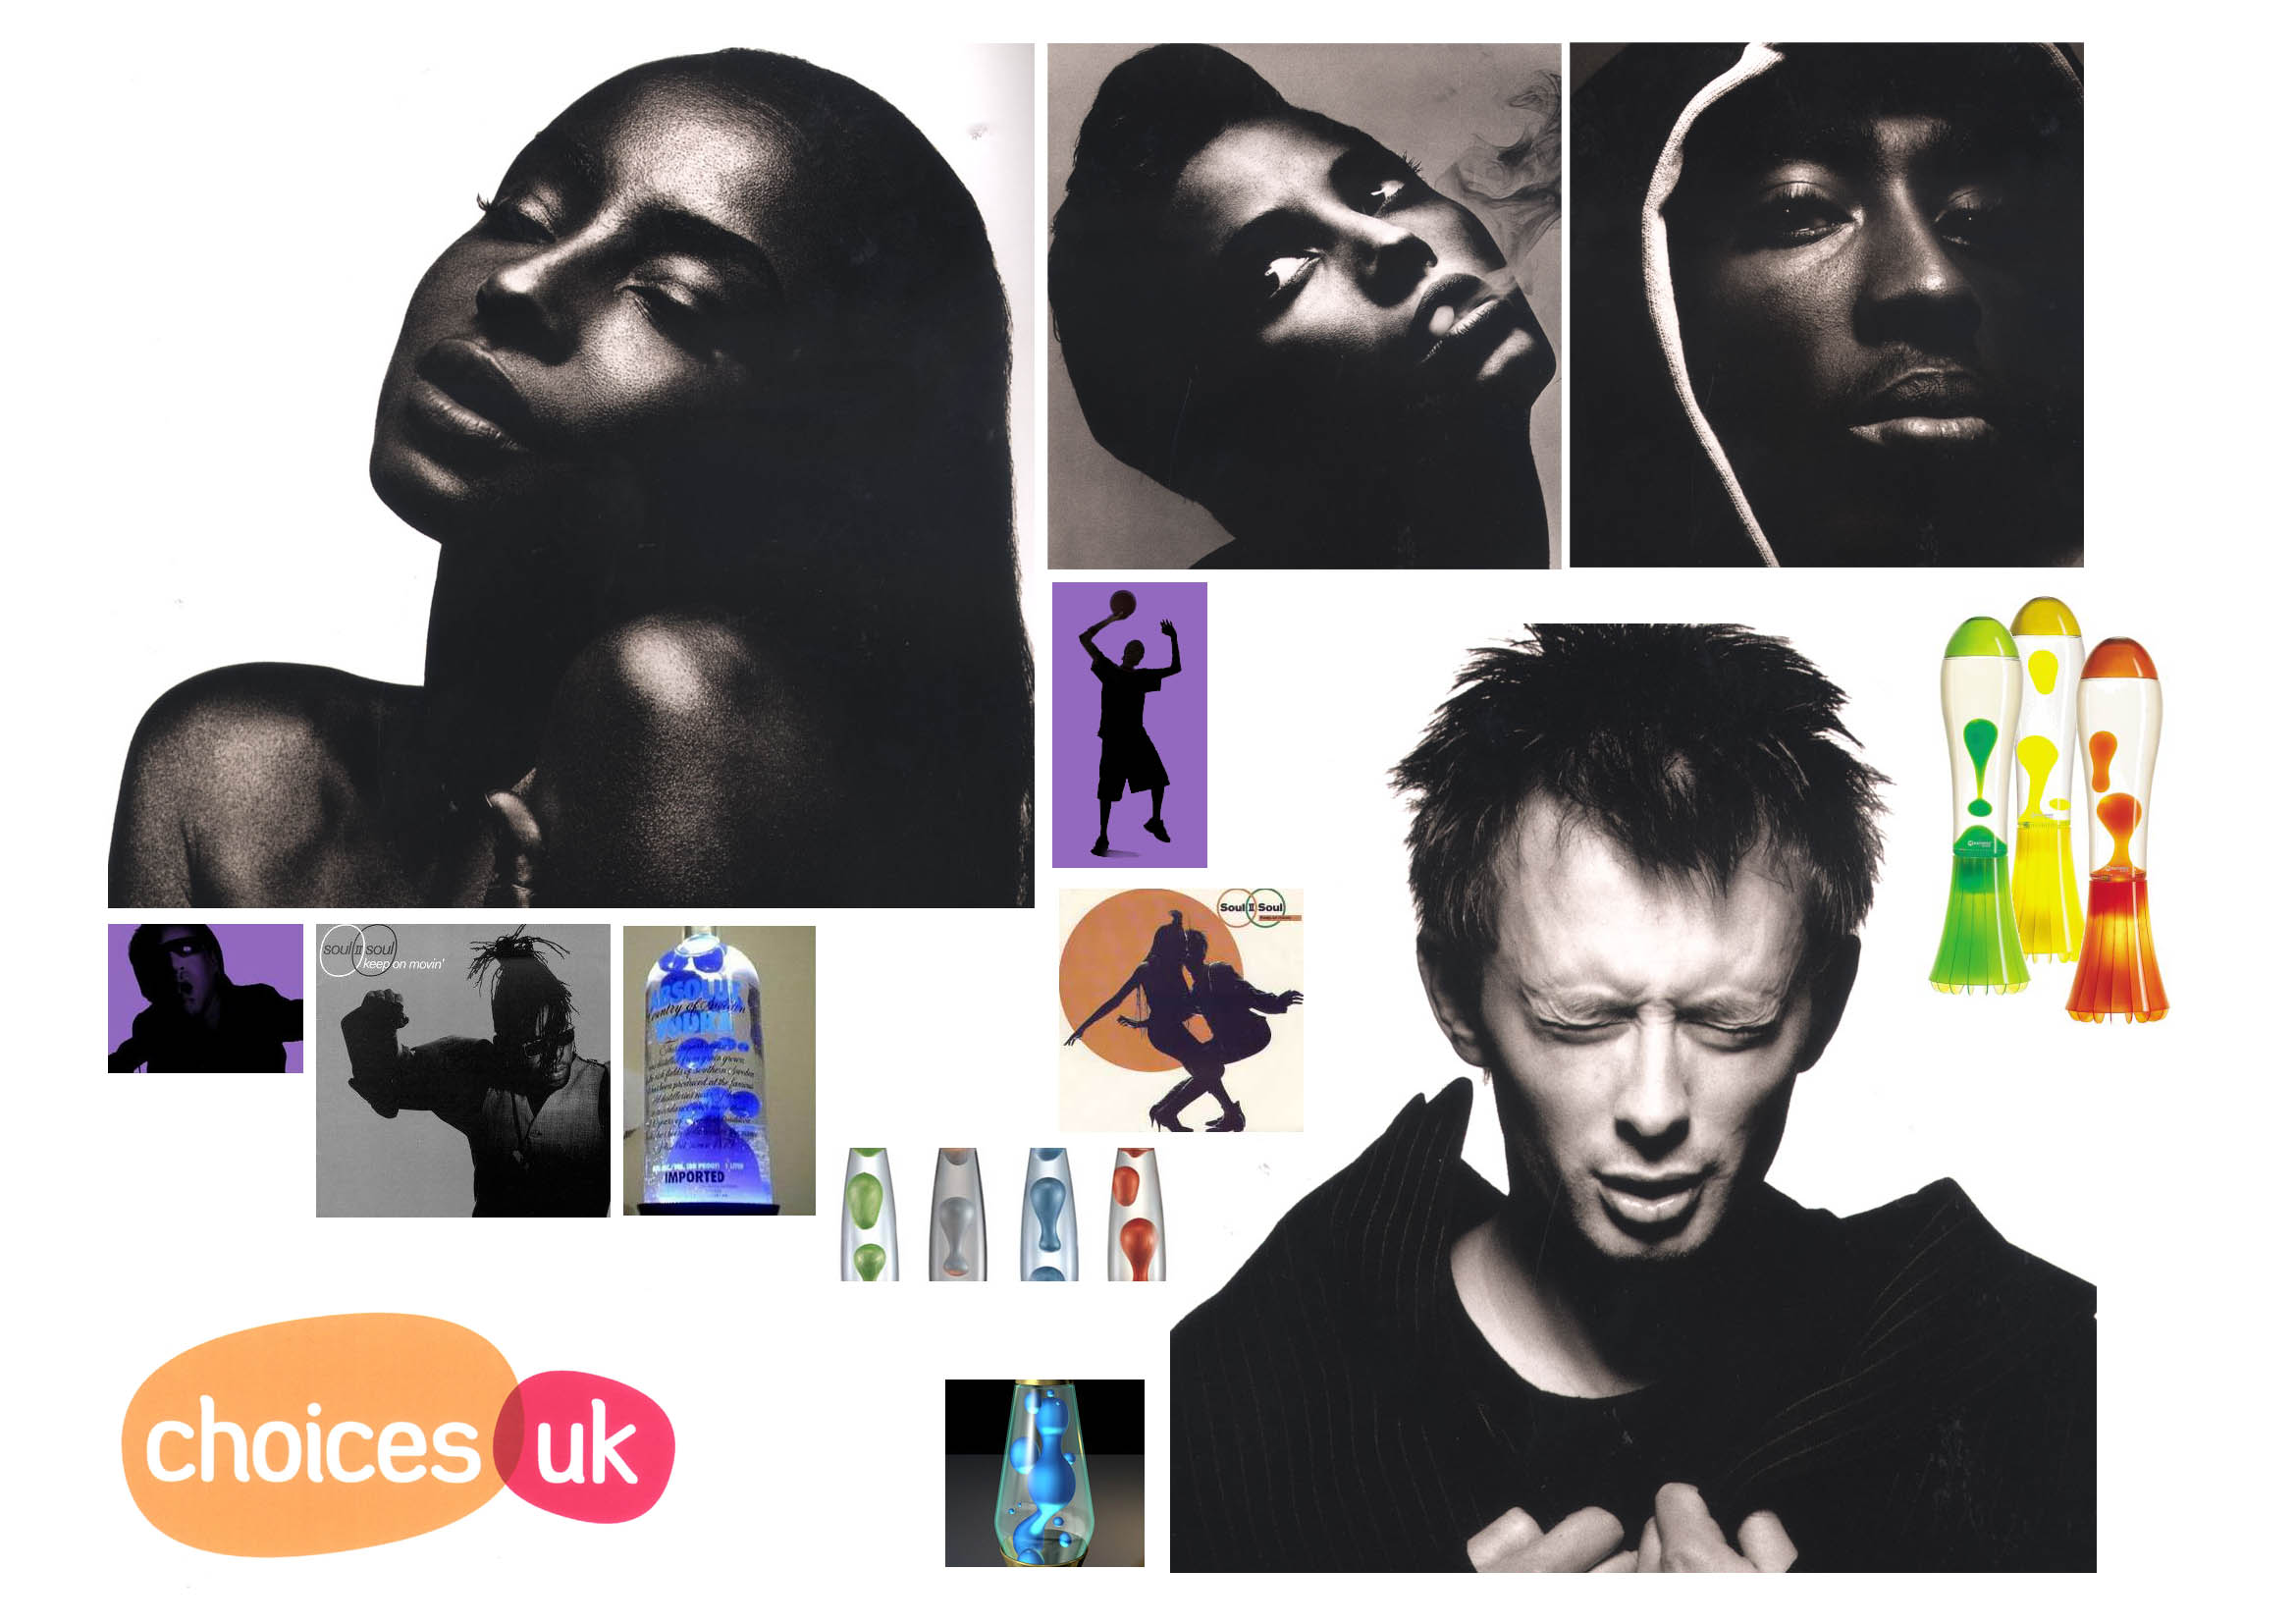 Mood board for Choices UK